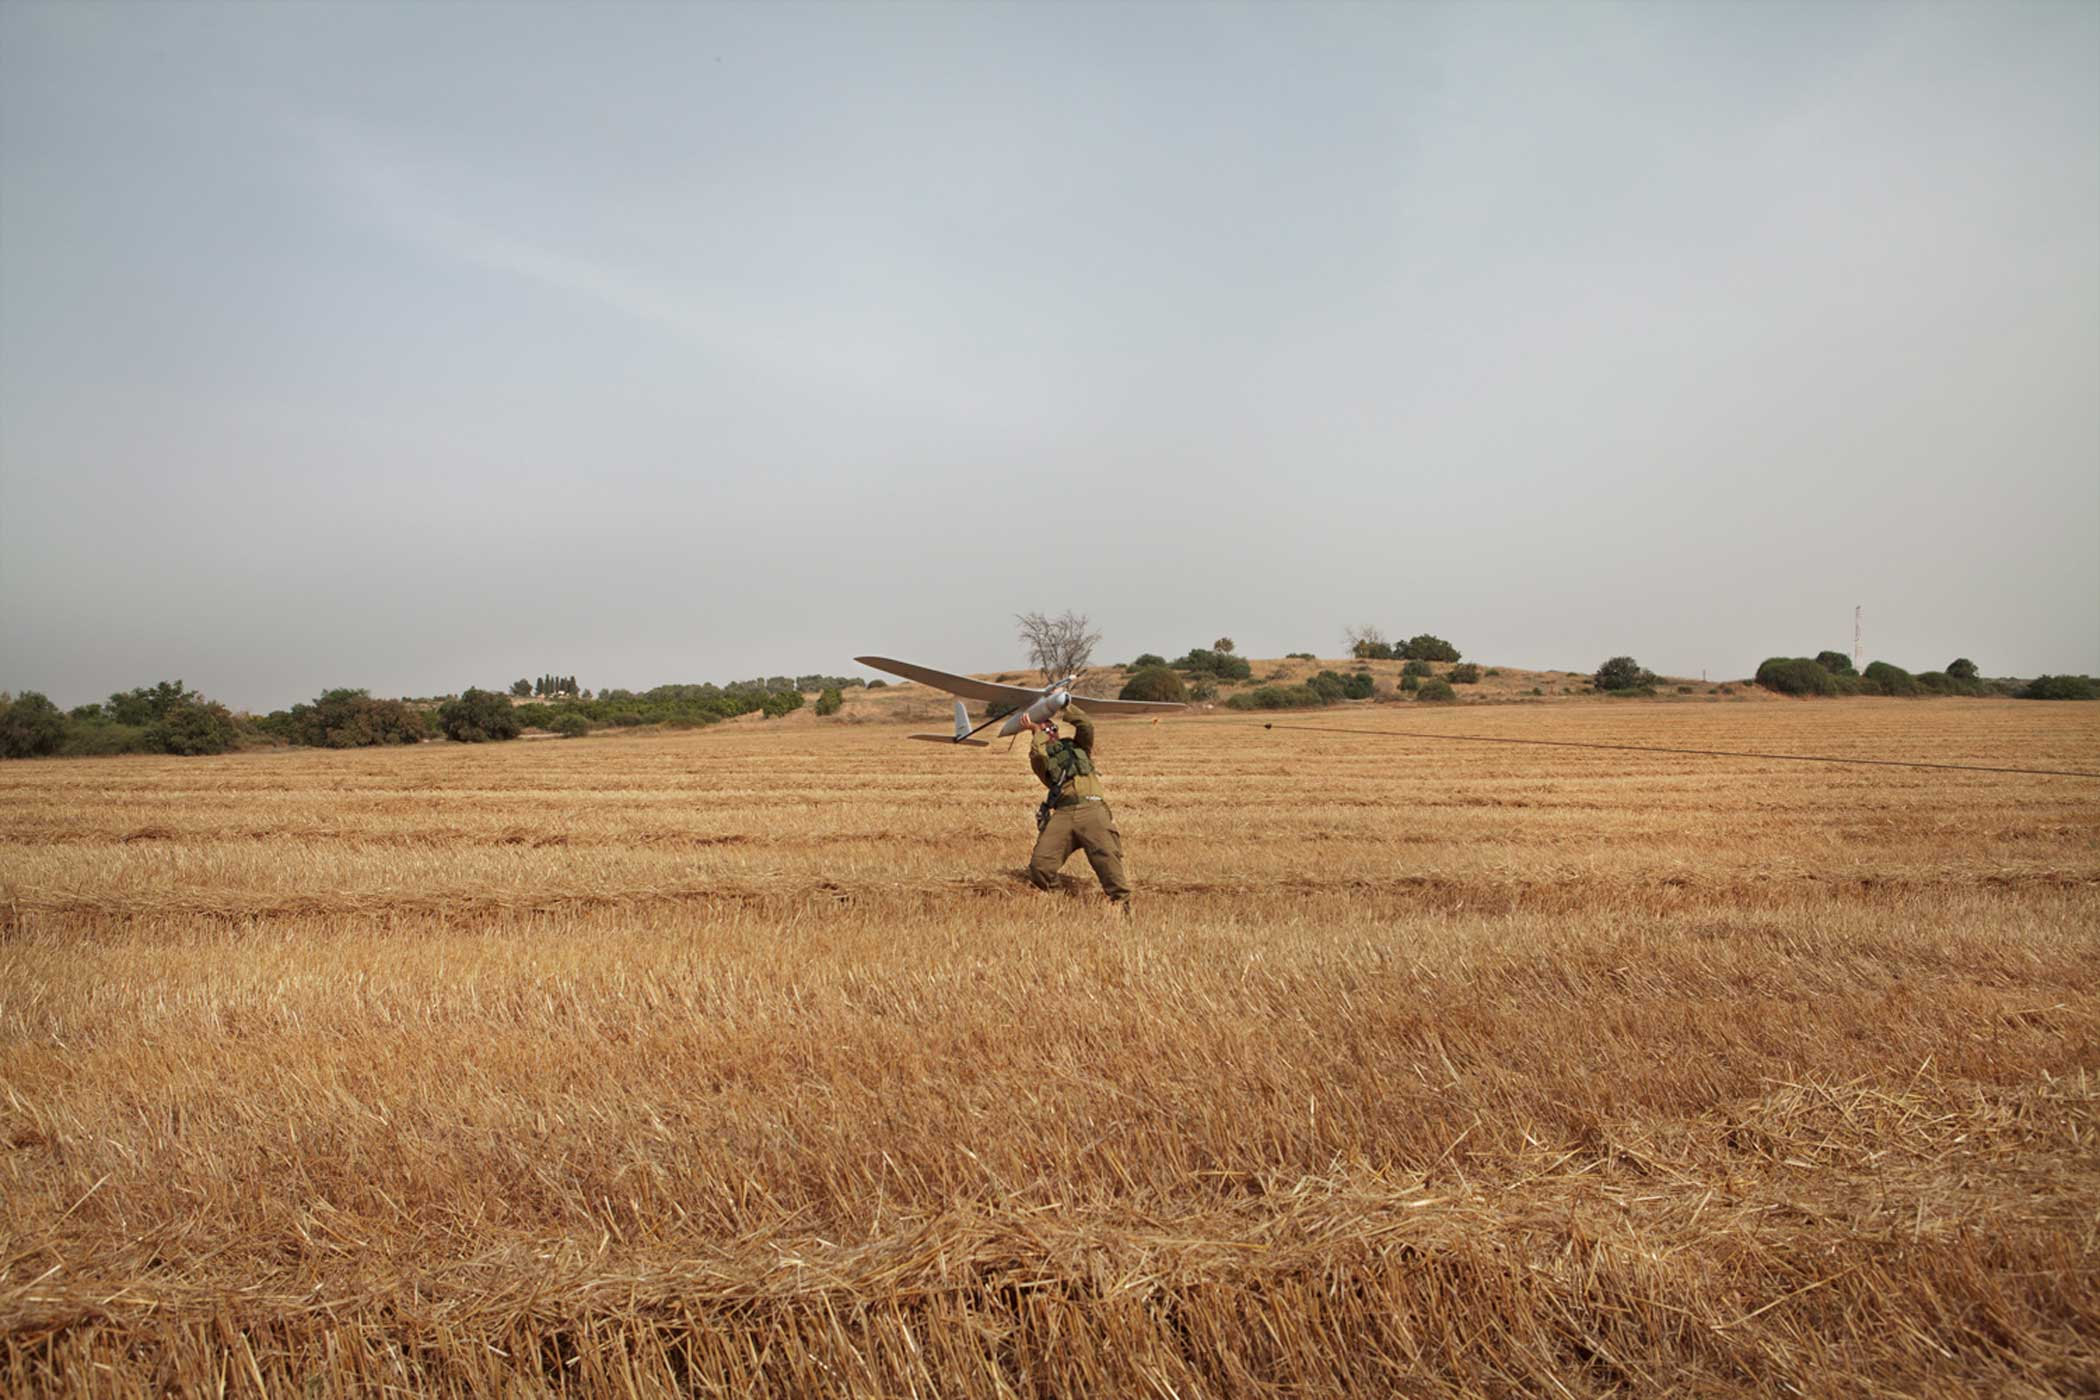 An Israeli soldier from the Sky Rider Unit launches a Skylark mini-Unmanned Arial Vehicle (UAV) during a demonstration close to the border with Gaza. Sky Rider units provide real-time video from the battlefield.